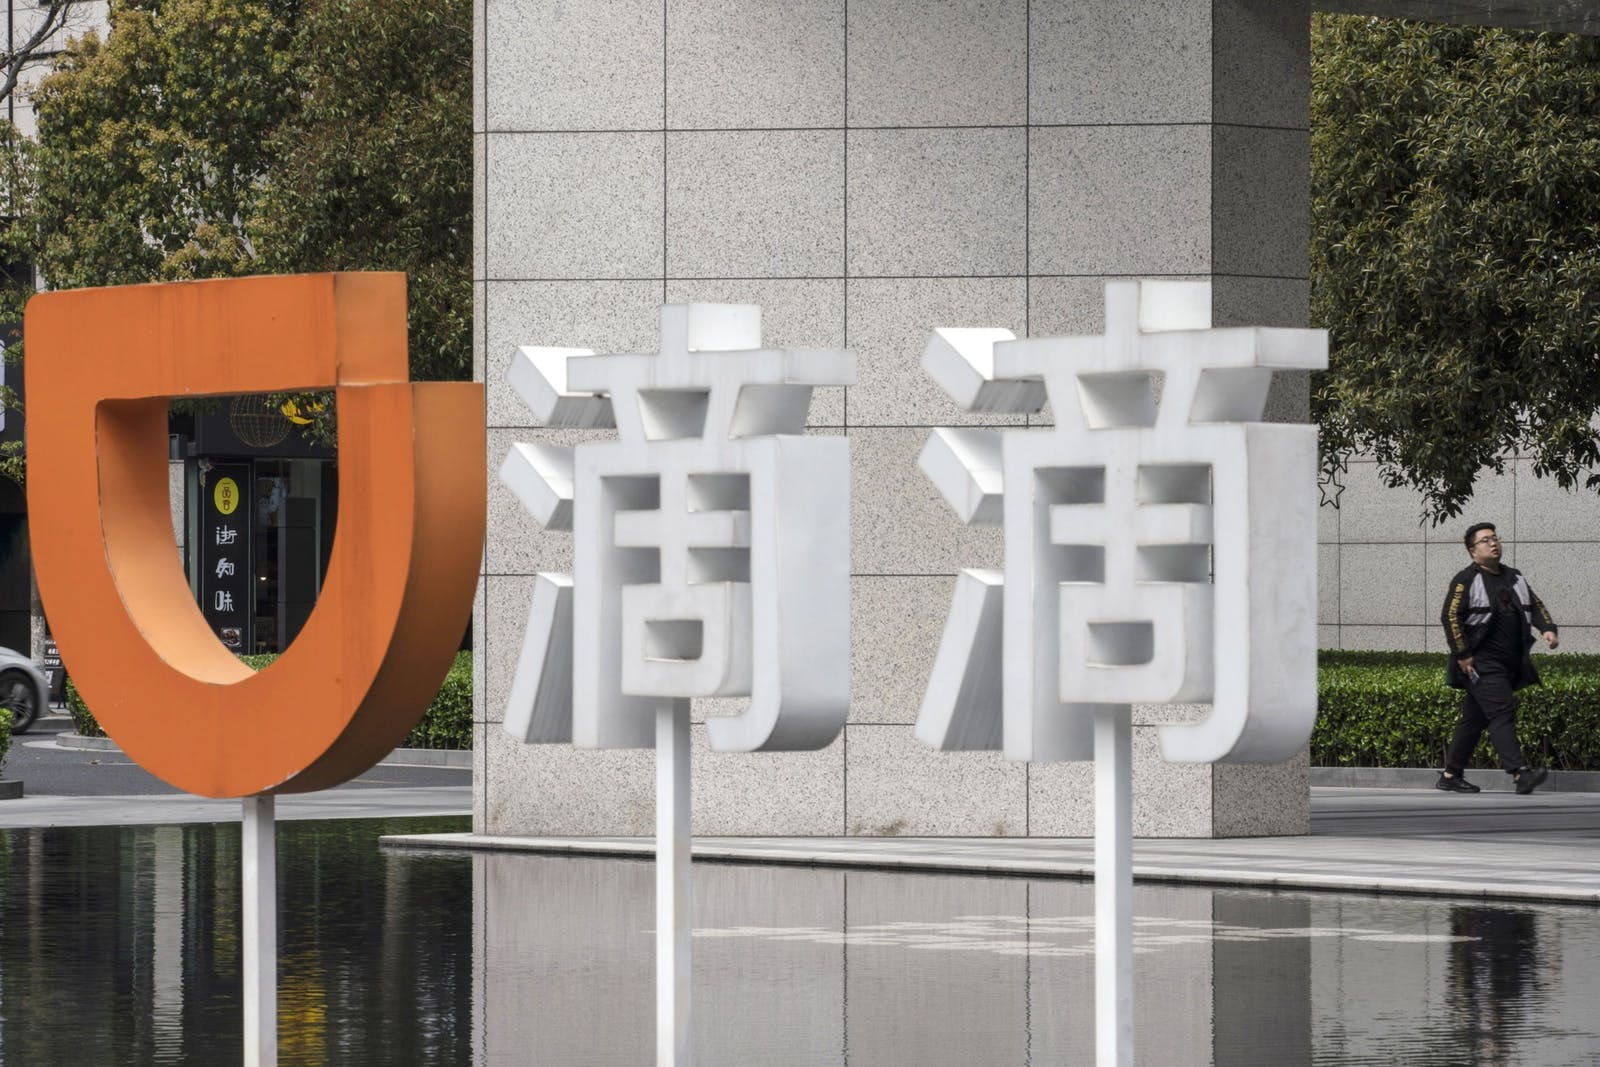 Didi's offices in Hangzhou, China. Photo by Bloomberg.